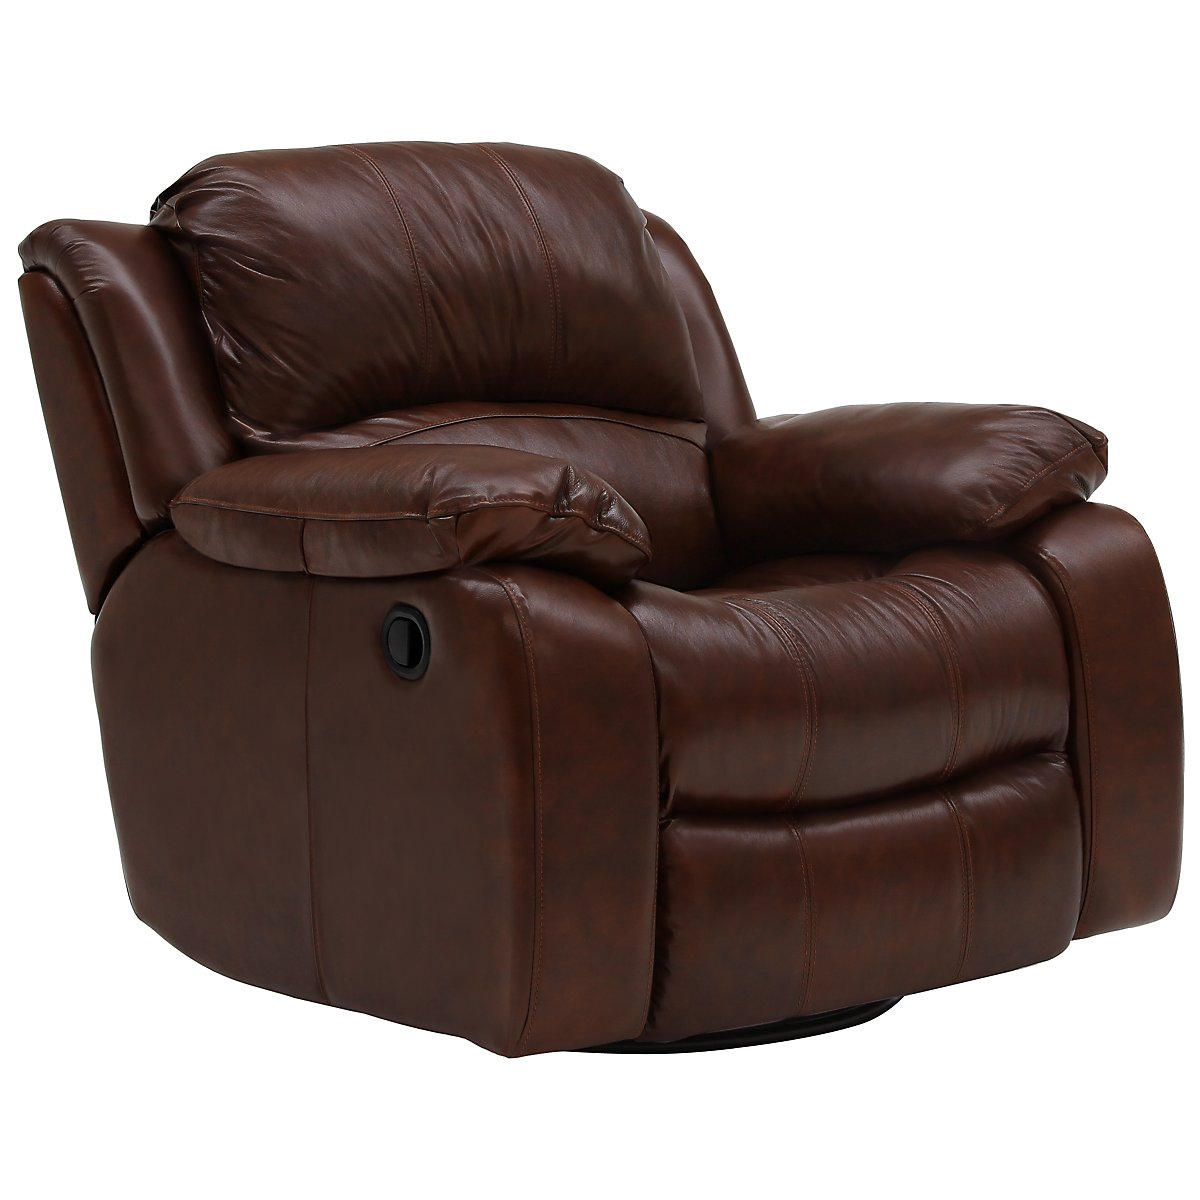 Tyler3 Medium Brown Leather & Vinyl Power Recliner